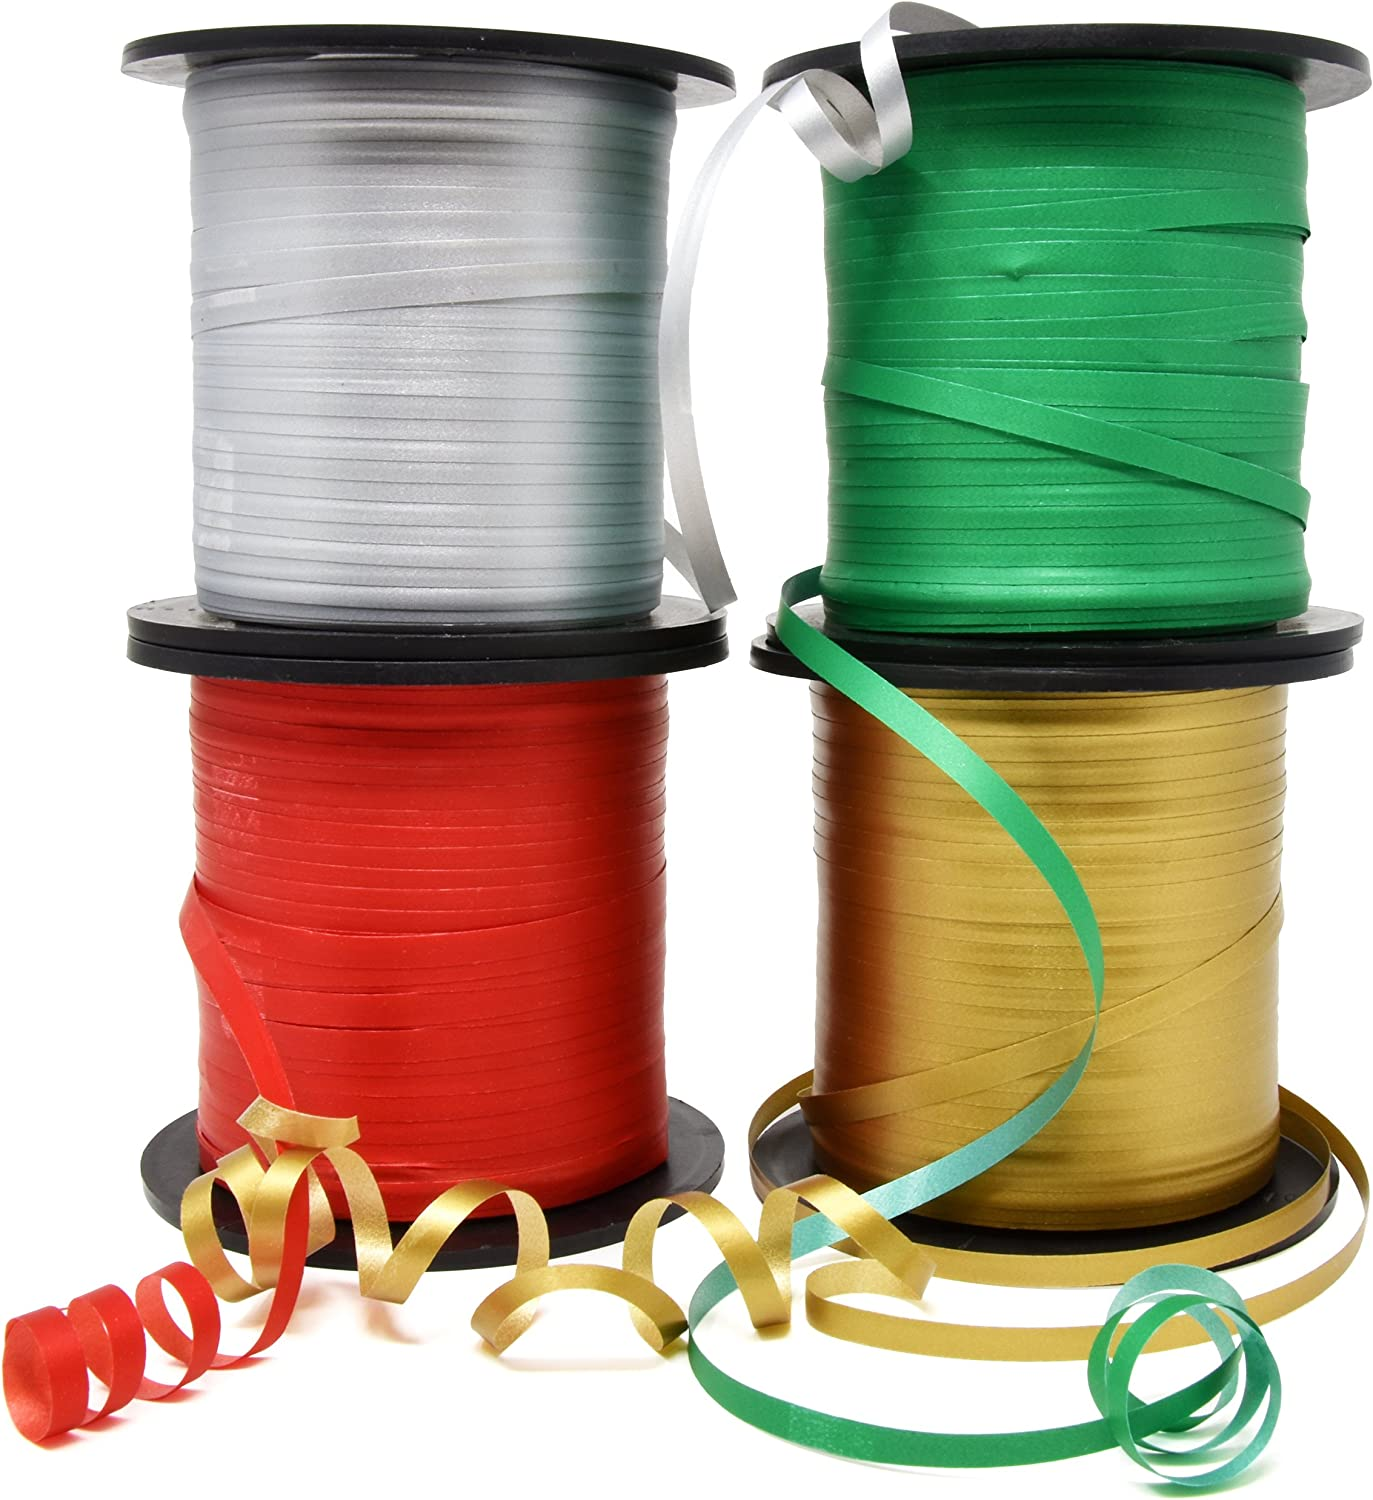 Christmas Curling Ribbon Pack of 4 Rolls Green, Red Gold & Silver; Holiday Party Crafts Supplies Decorations- 350 Yards per Roll – Total of 4200 Feet 5 mm Ribbon; by Gift Boutique